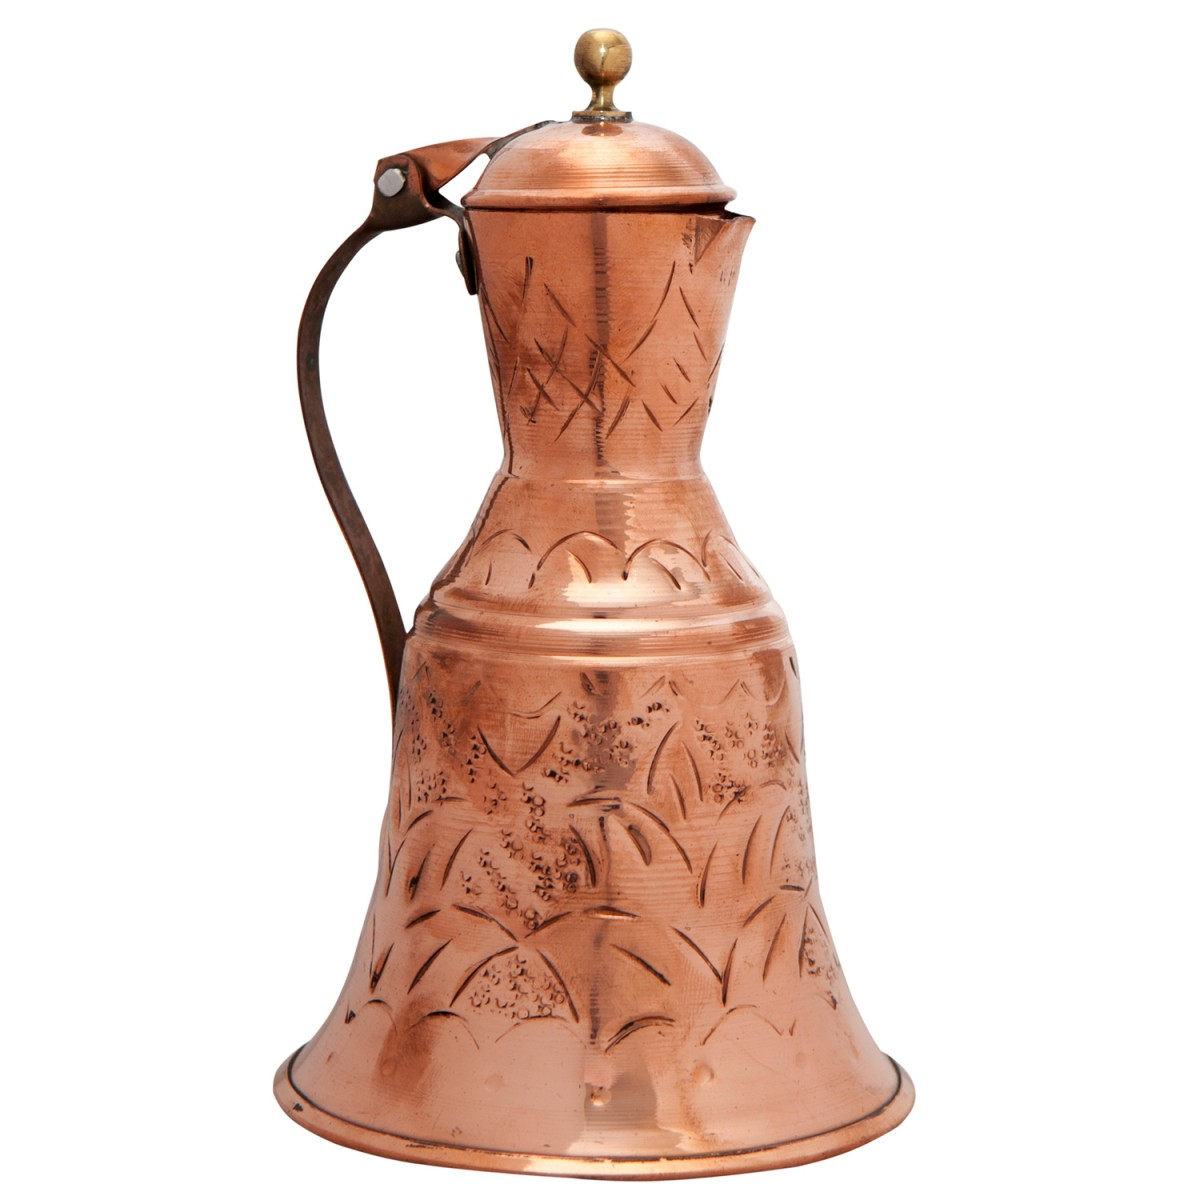 Decorative Copper Water Pitcher, Tall-1